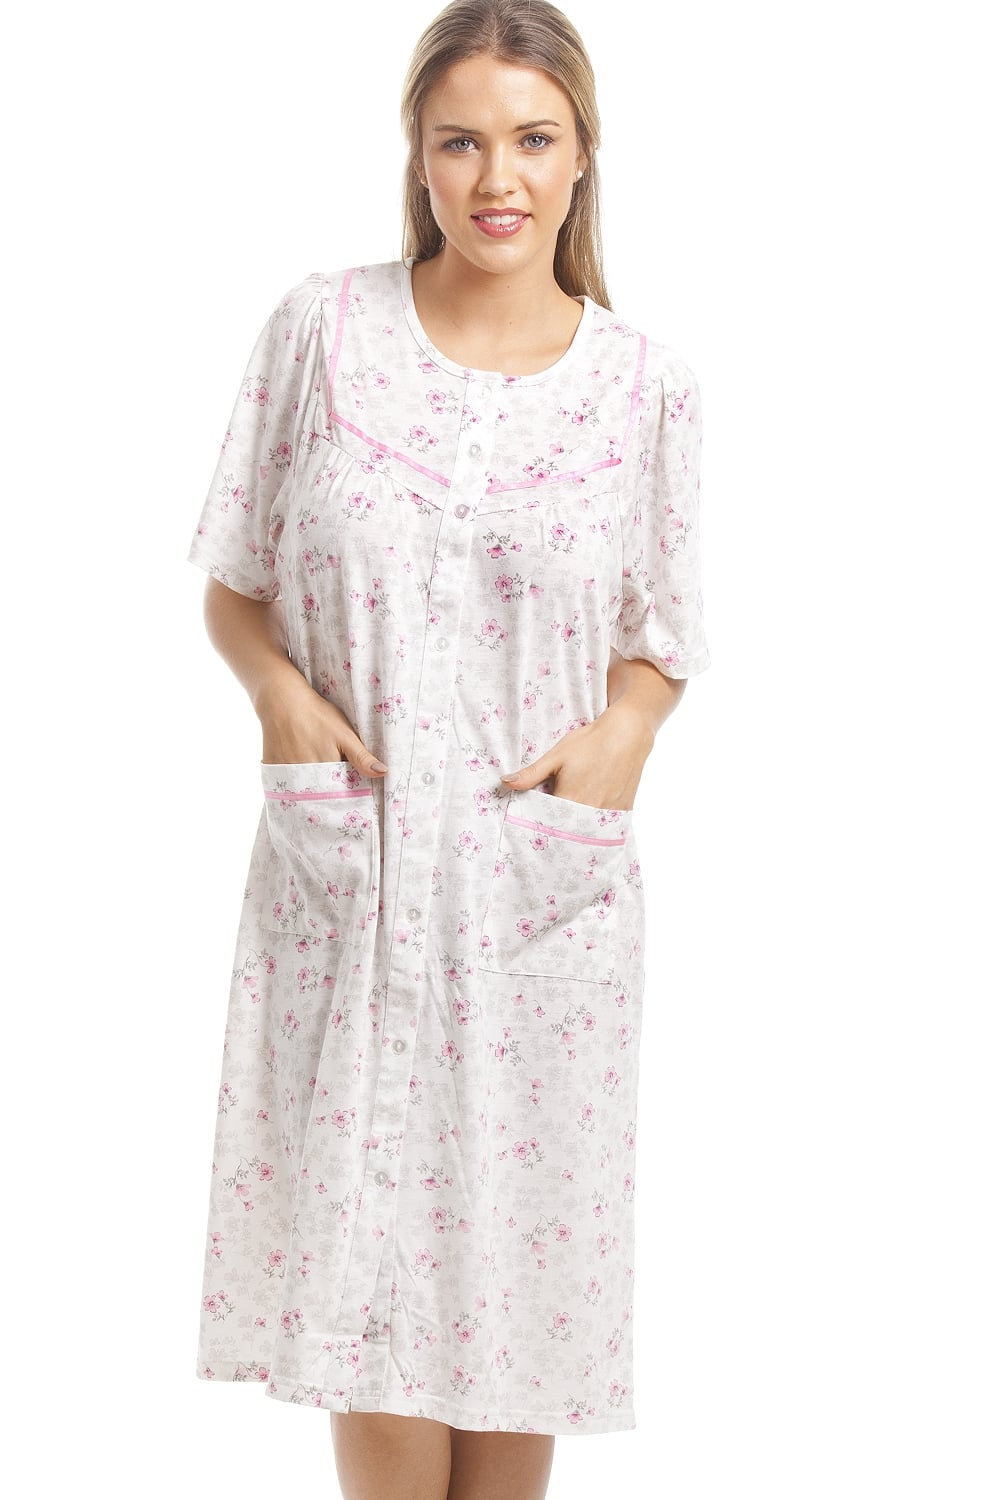 6077c71106 Camille Classic Pink Floral Print White Short Sleeve Button Up Nightdress